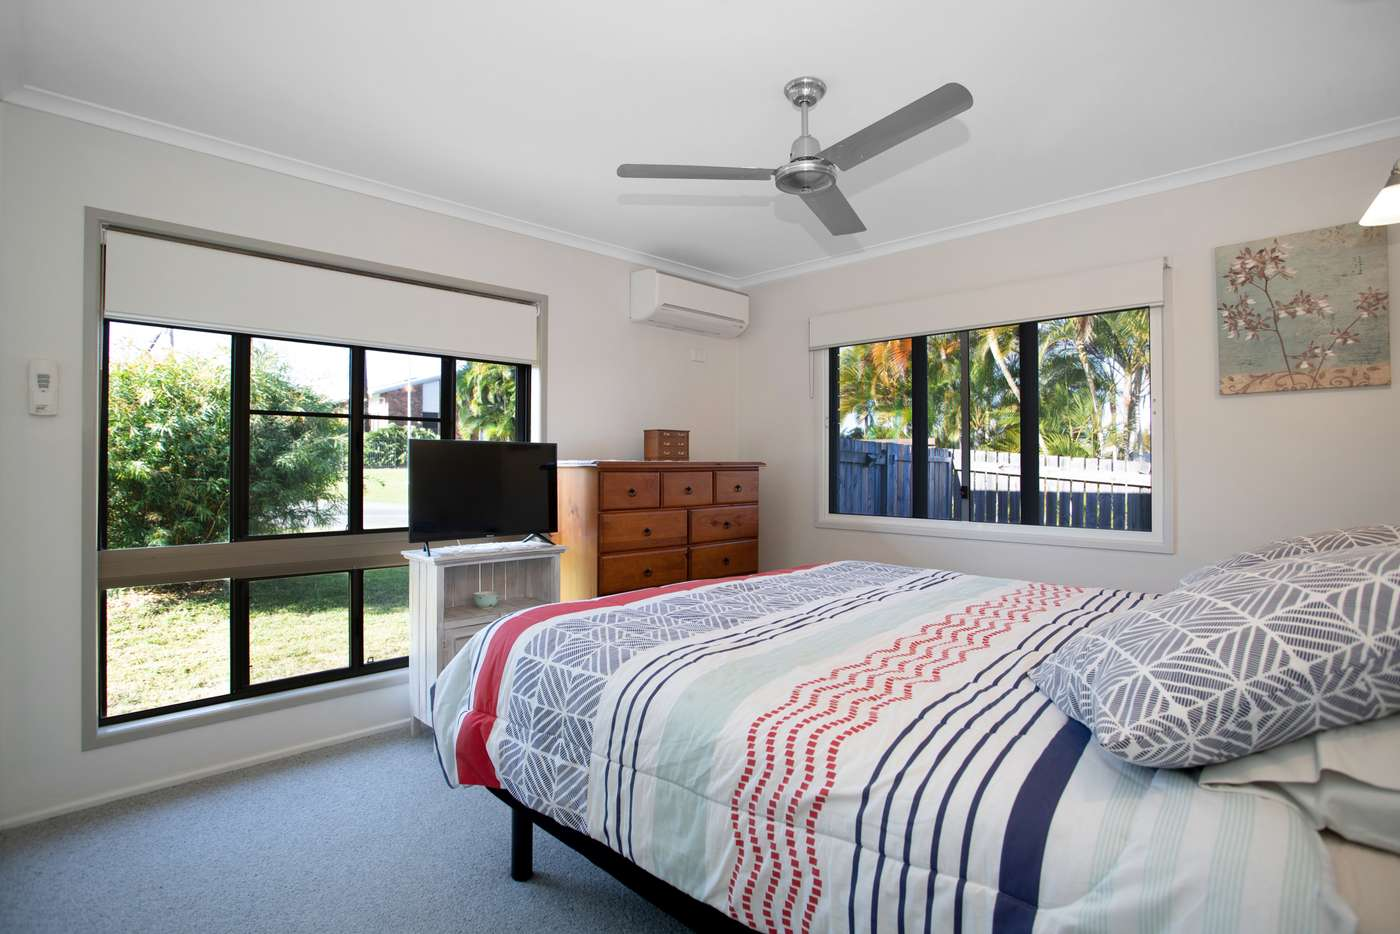 Seventh view of Homely house listing, 8 Challenger Street, Beaconsfield QLD 4740